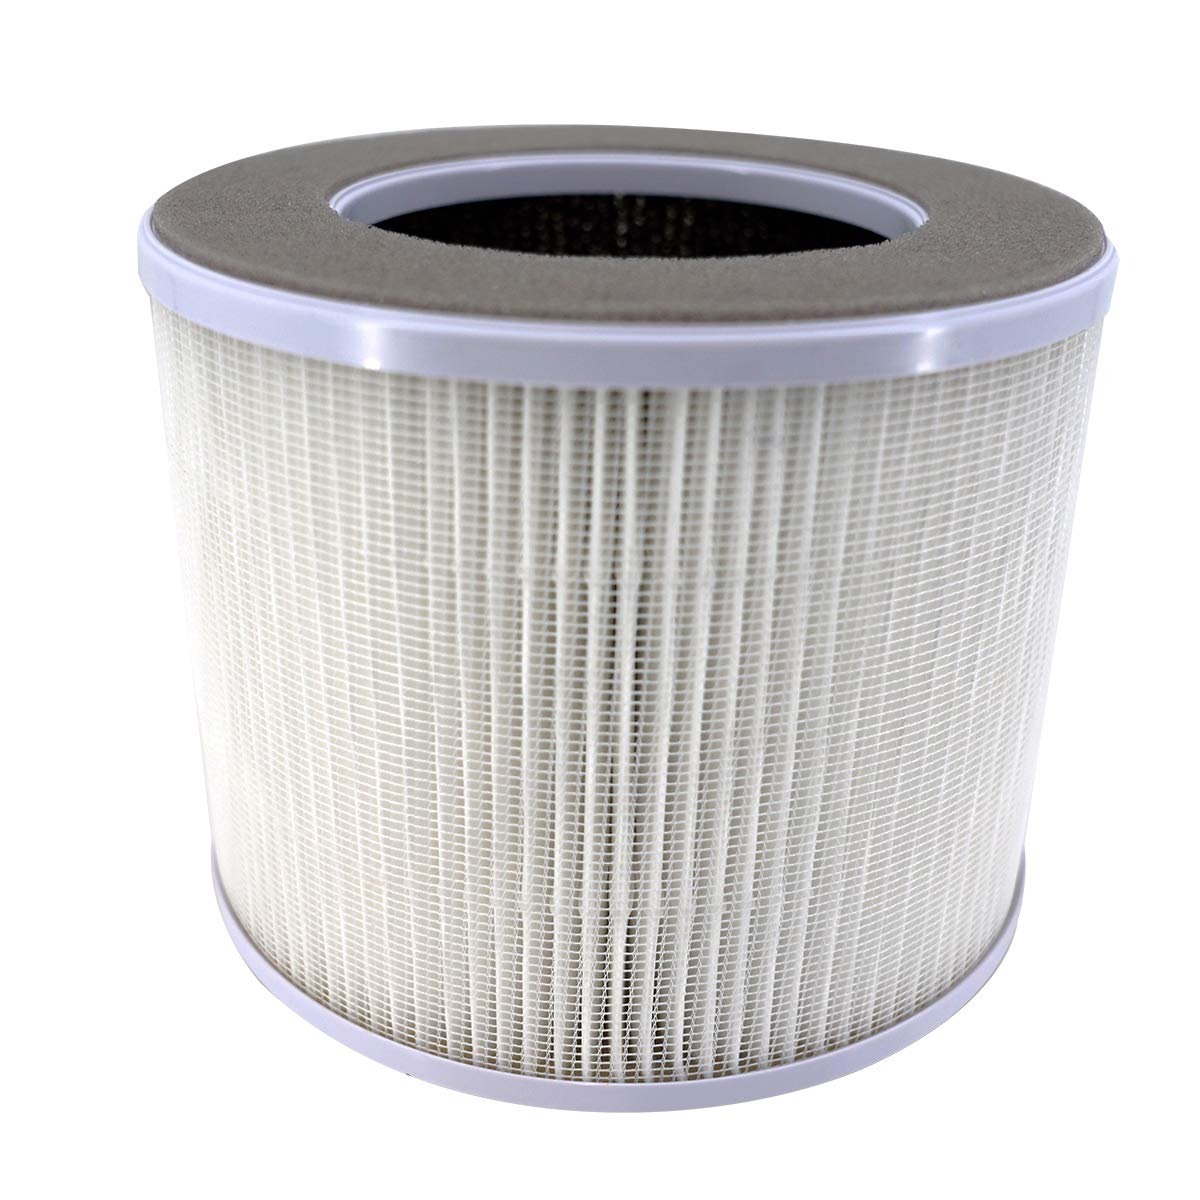 ANSIO 1092 Replacement Filter for Air Purifier with True HEPA Activated Carbon Filter (1091, 1099 Air Purifier)